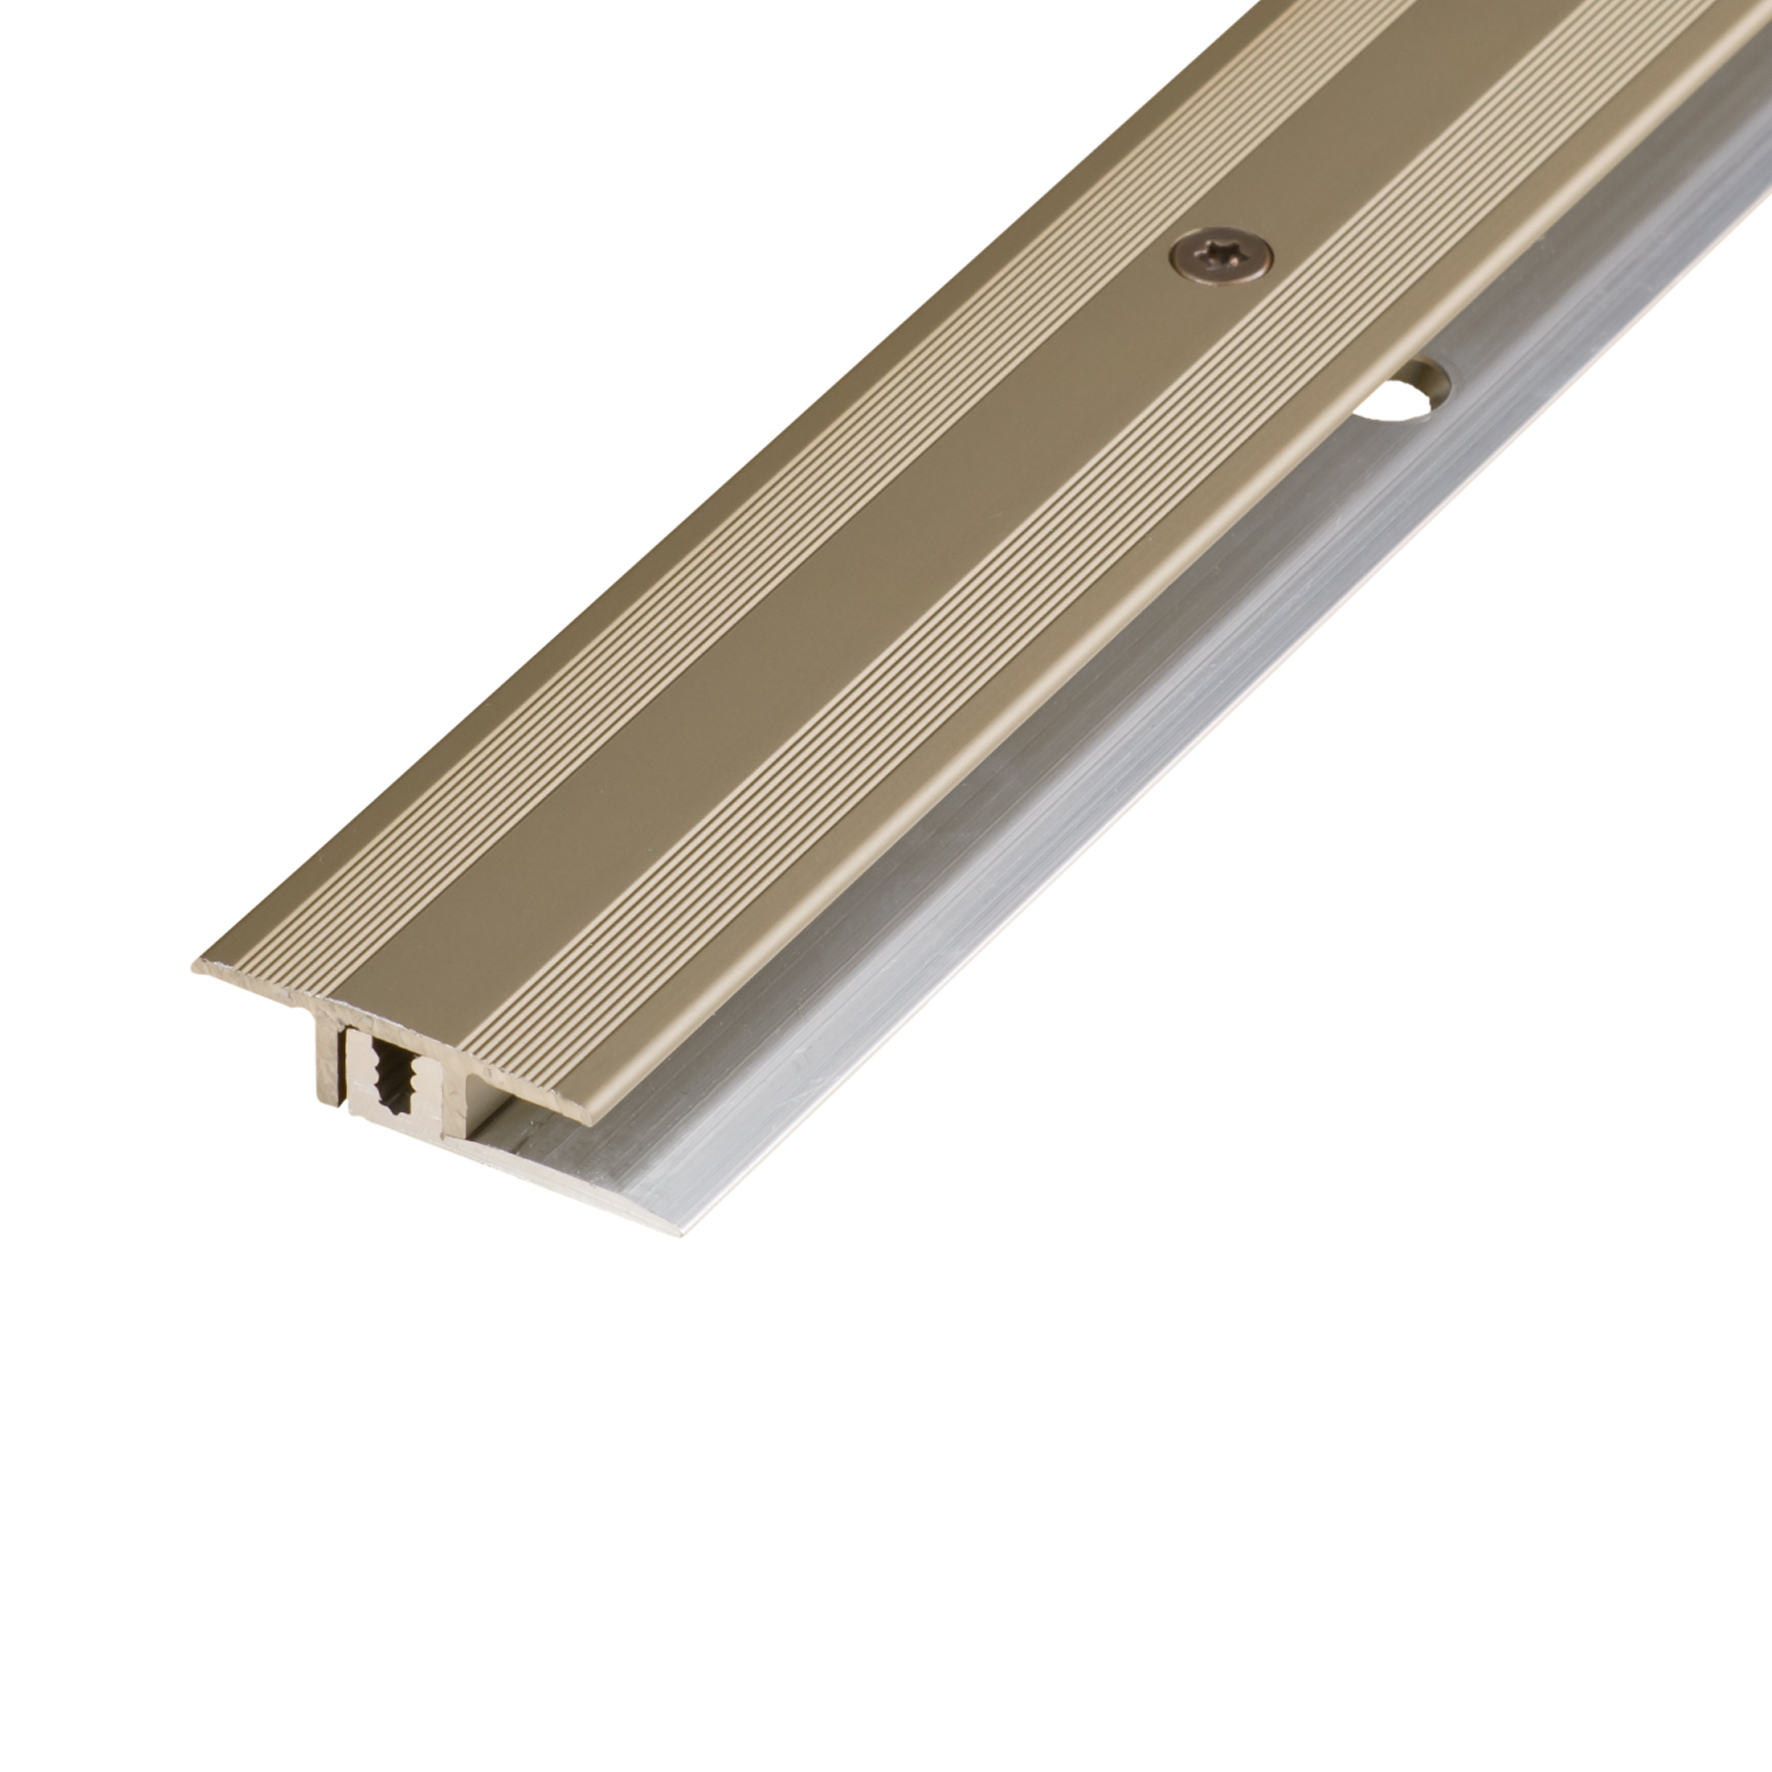 Transition profile alu stainless steel